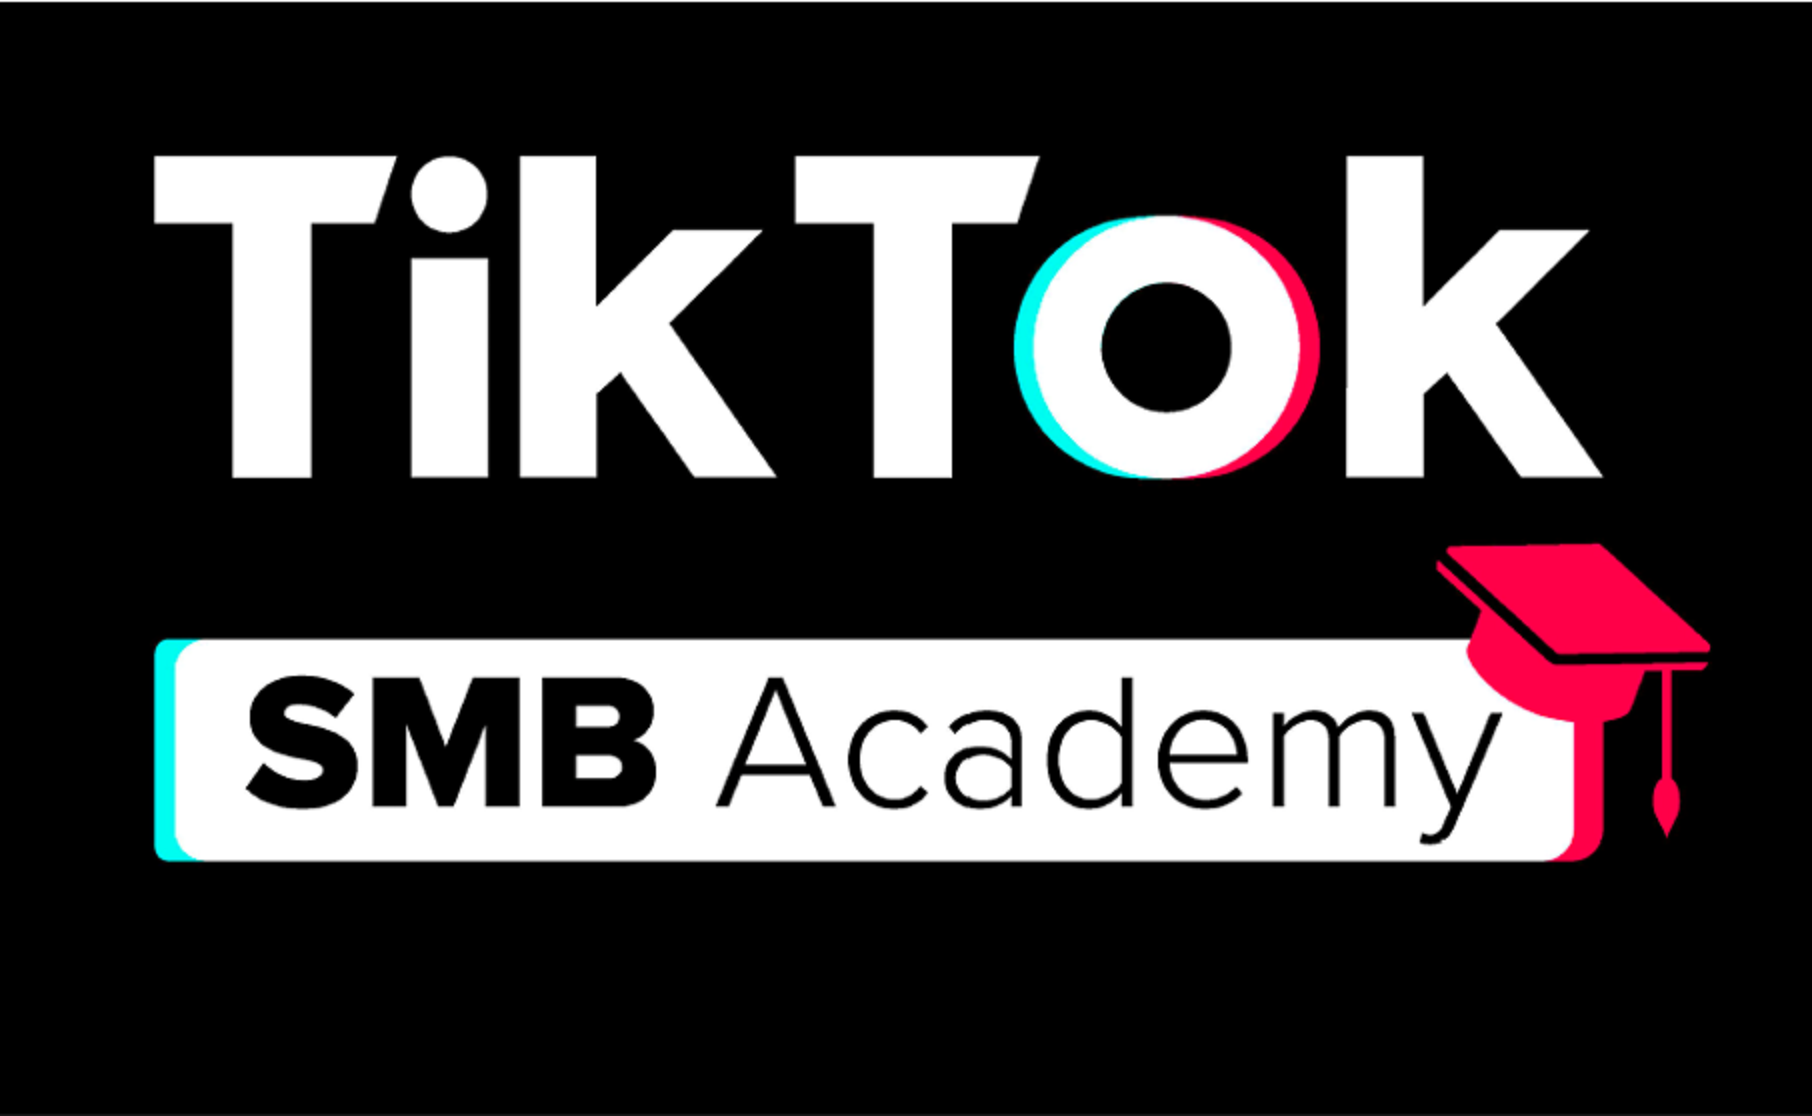 tiktok-for-business-launches-first-of-its-kind-smb-academy-in-menat